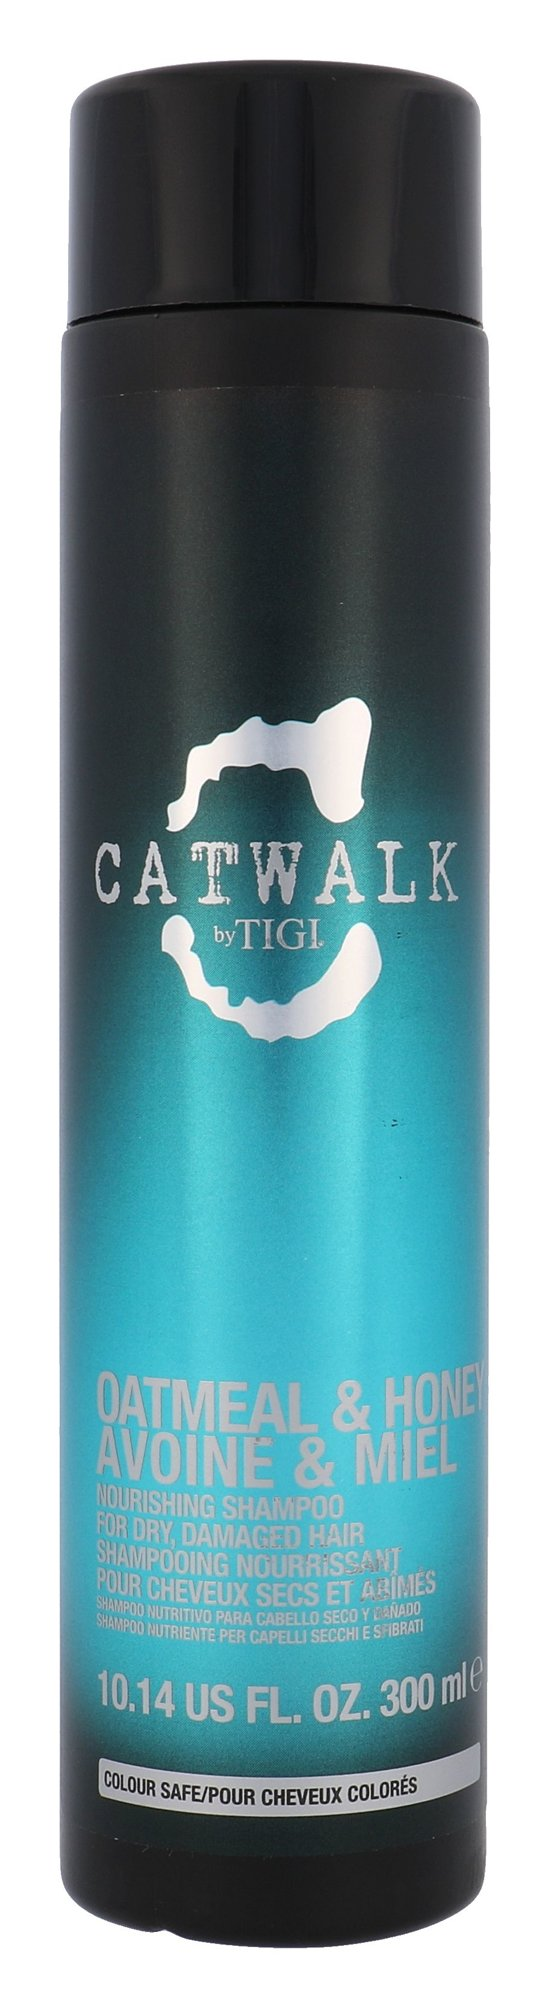 Tigi Catwalk Oatmeal & Honey Cosmetic 300ml